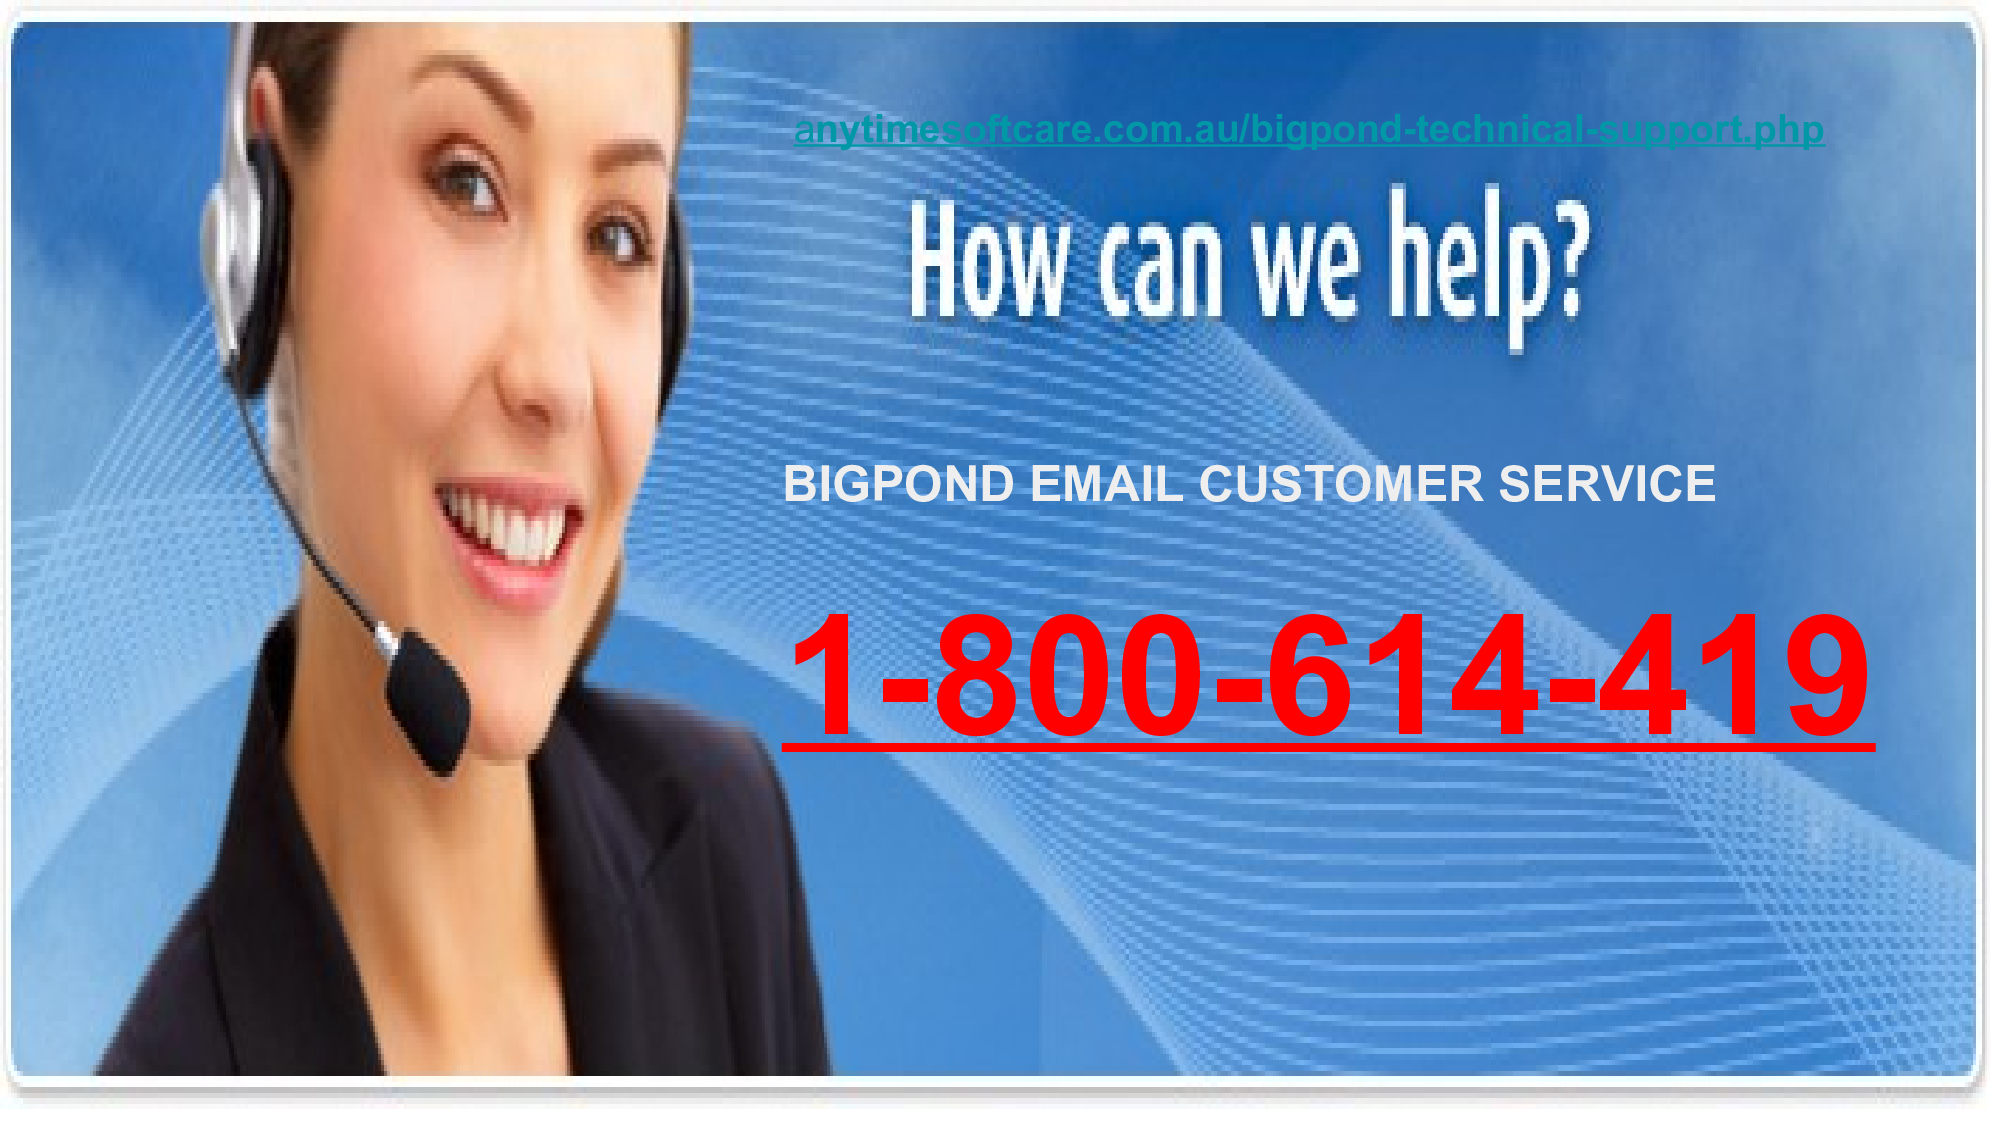 Bigpond Email Customer Service Experts Deal With Email